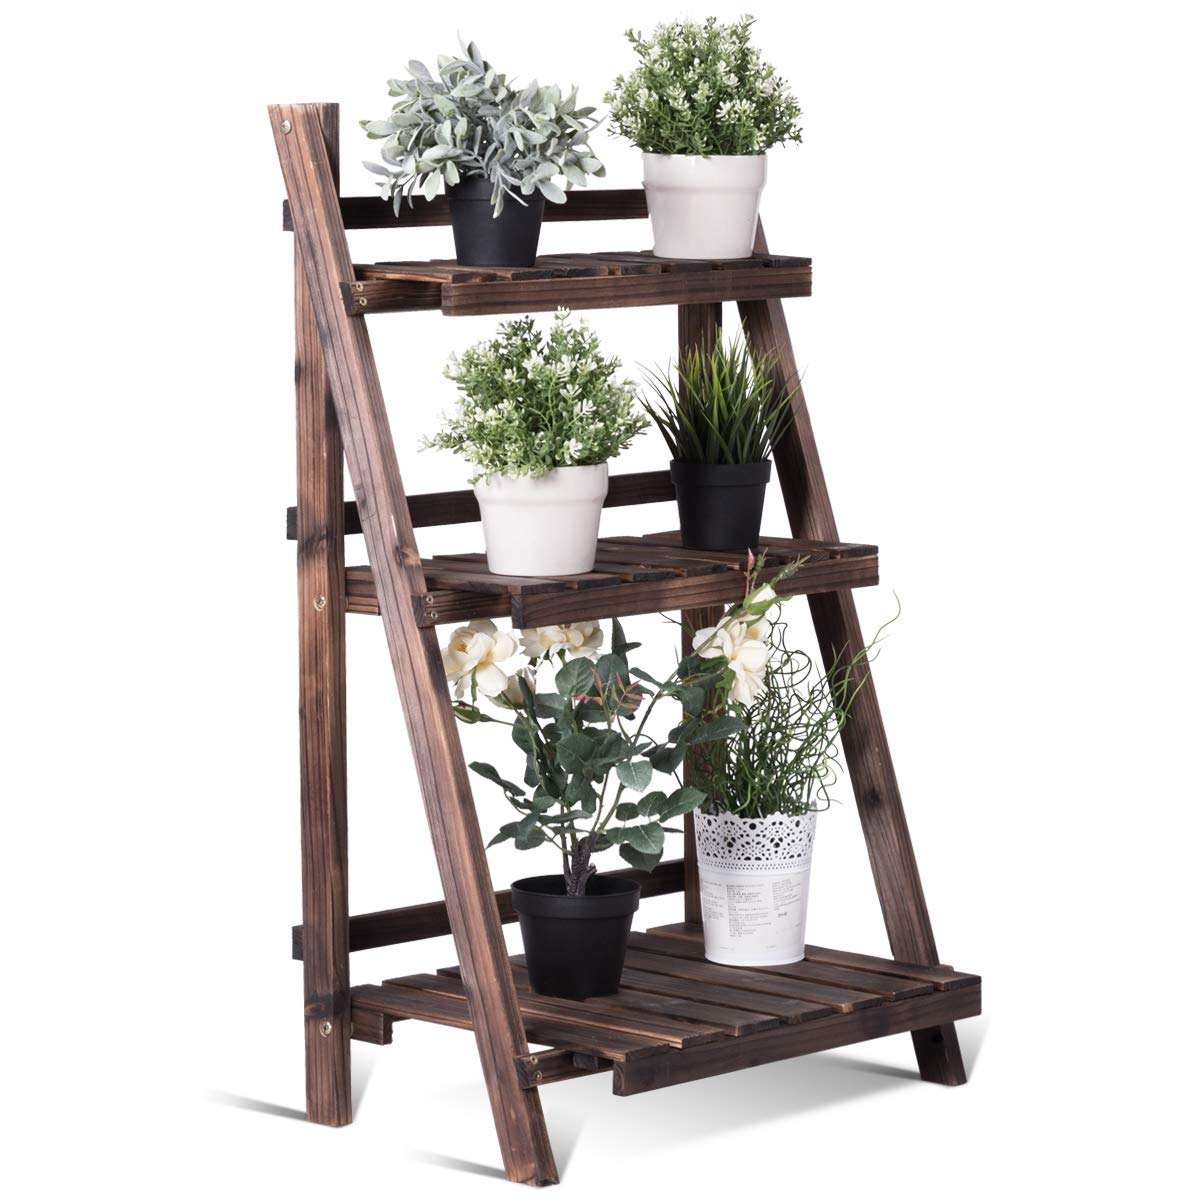 Giantex 3 Tier Folding Wooden Plant Stand with Pot Shelf Stand Display Rack for Indoor Outdoor Garden Greenhouse